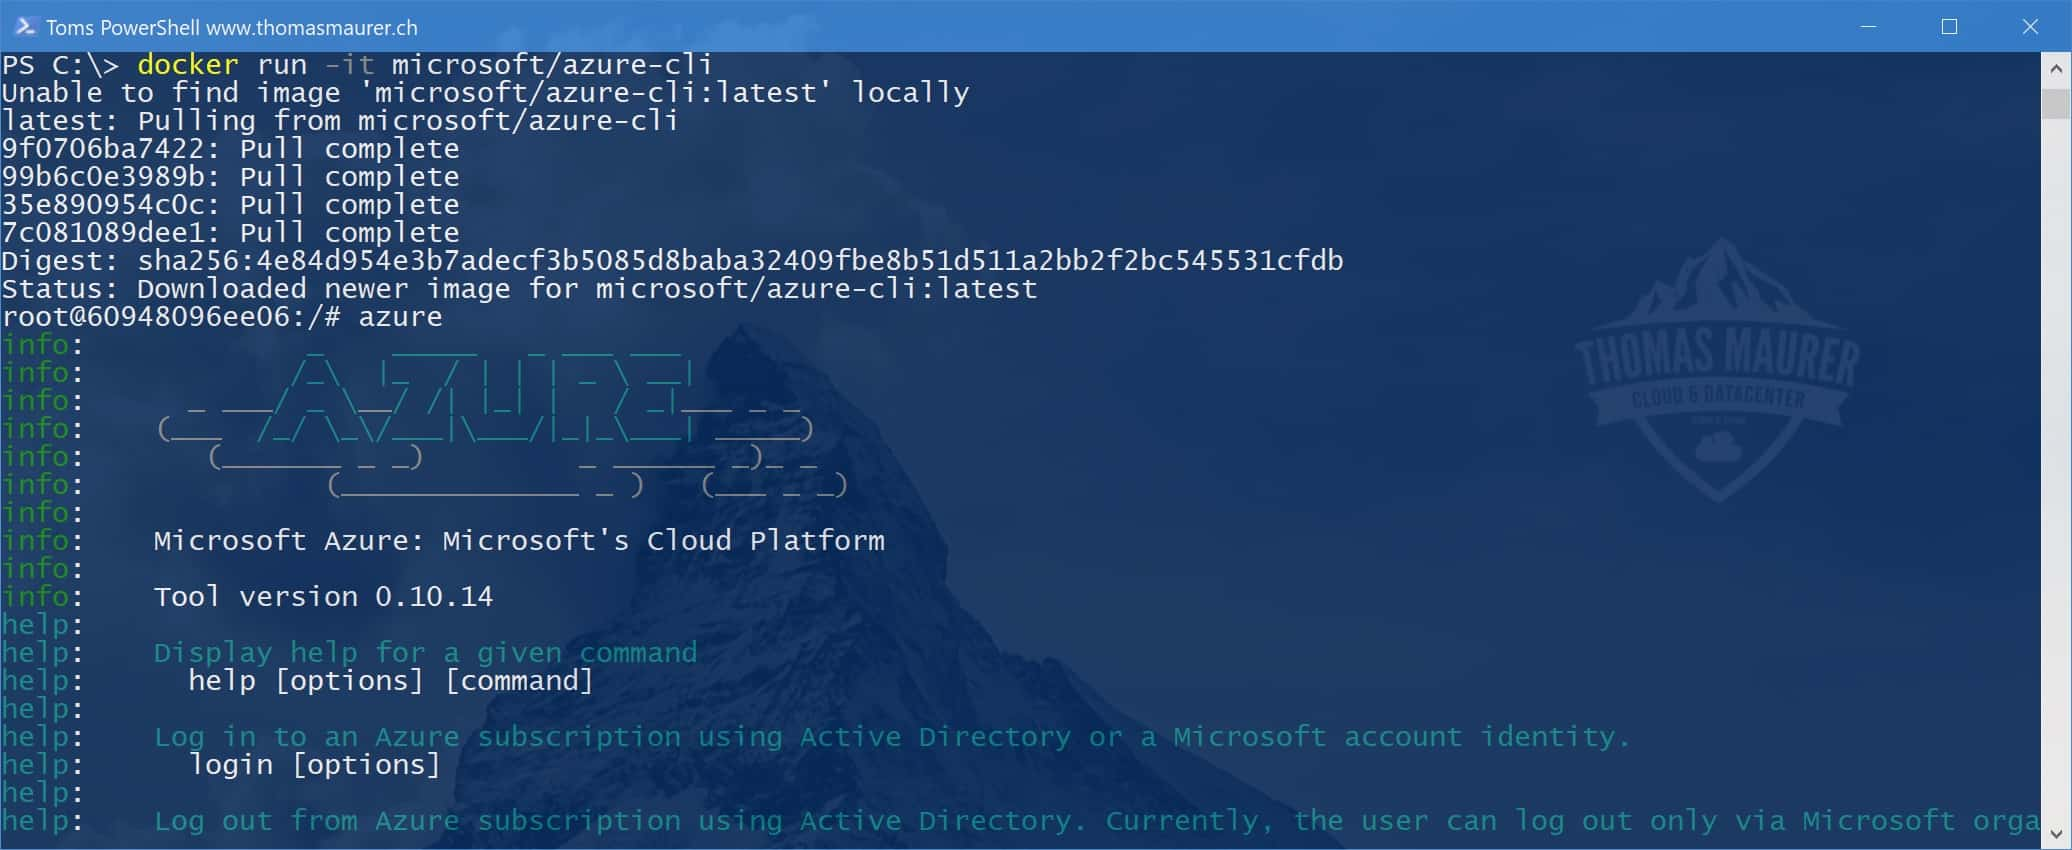 How to run Docker Linux Container on Windows 10 Fall Creator